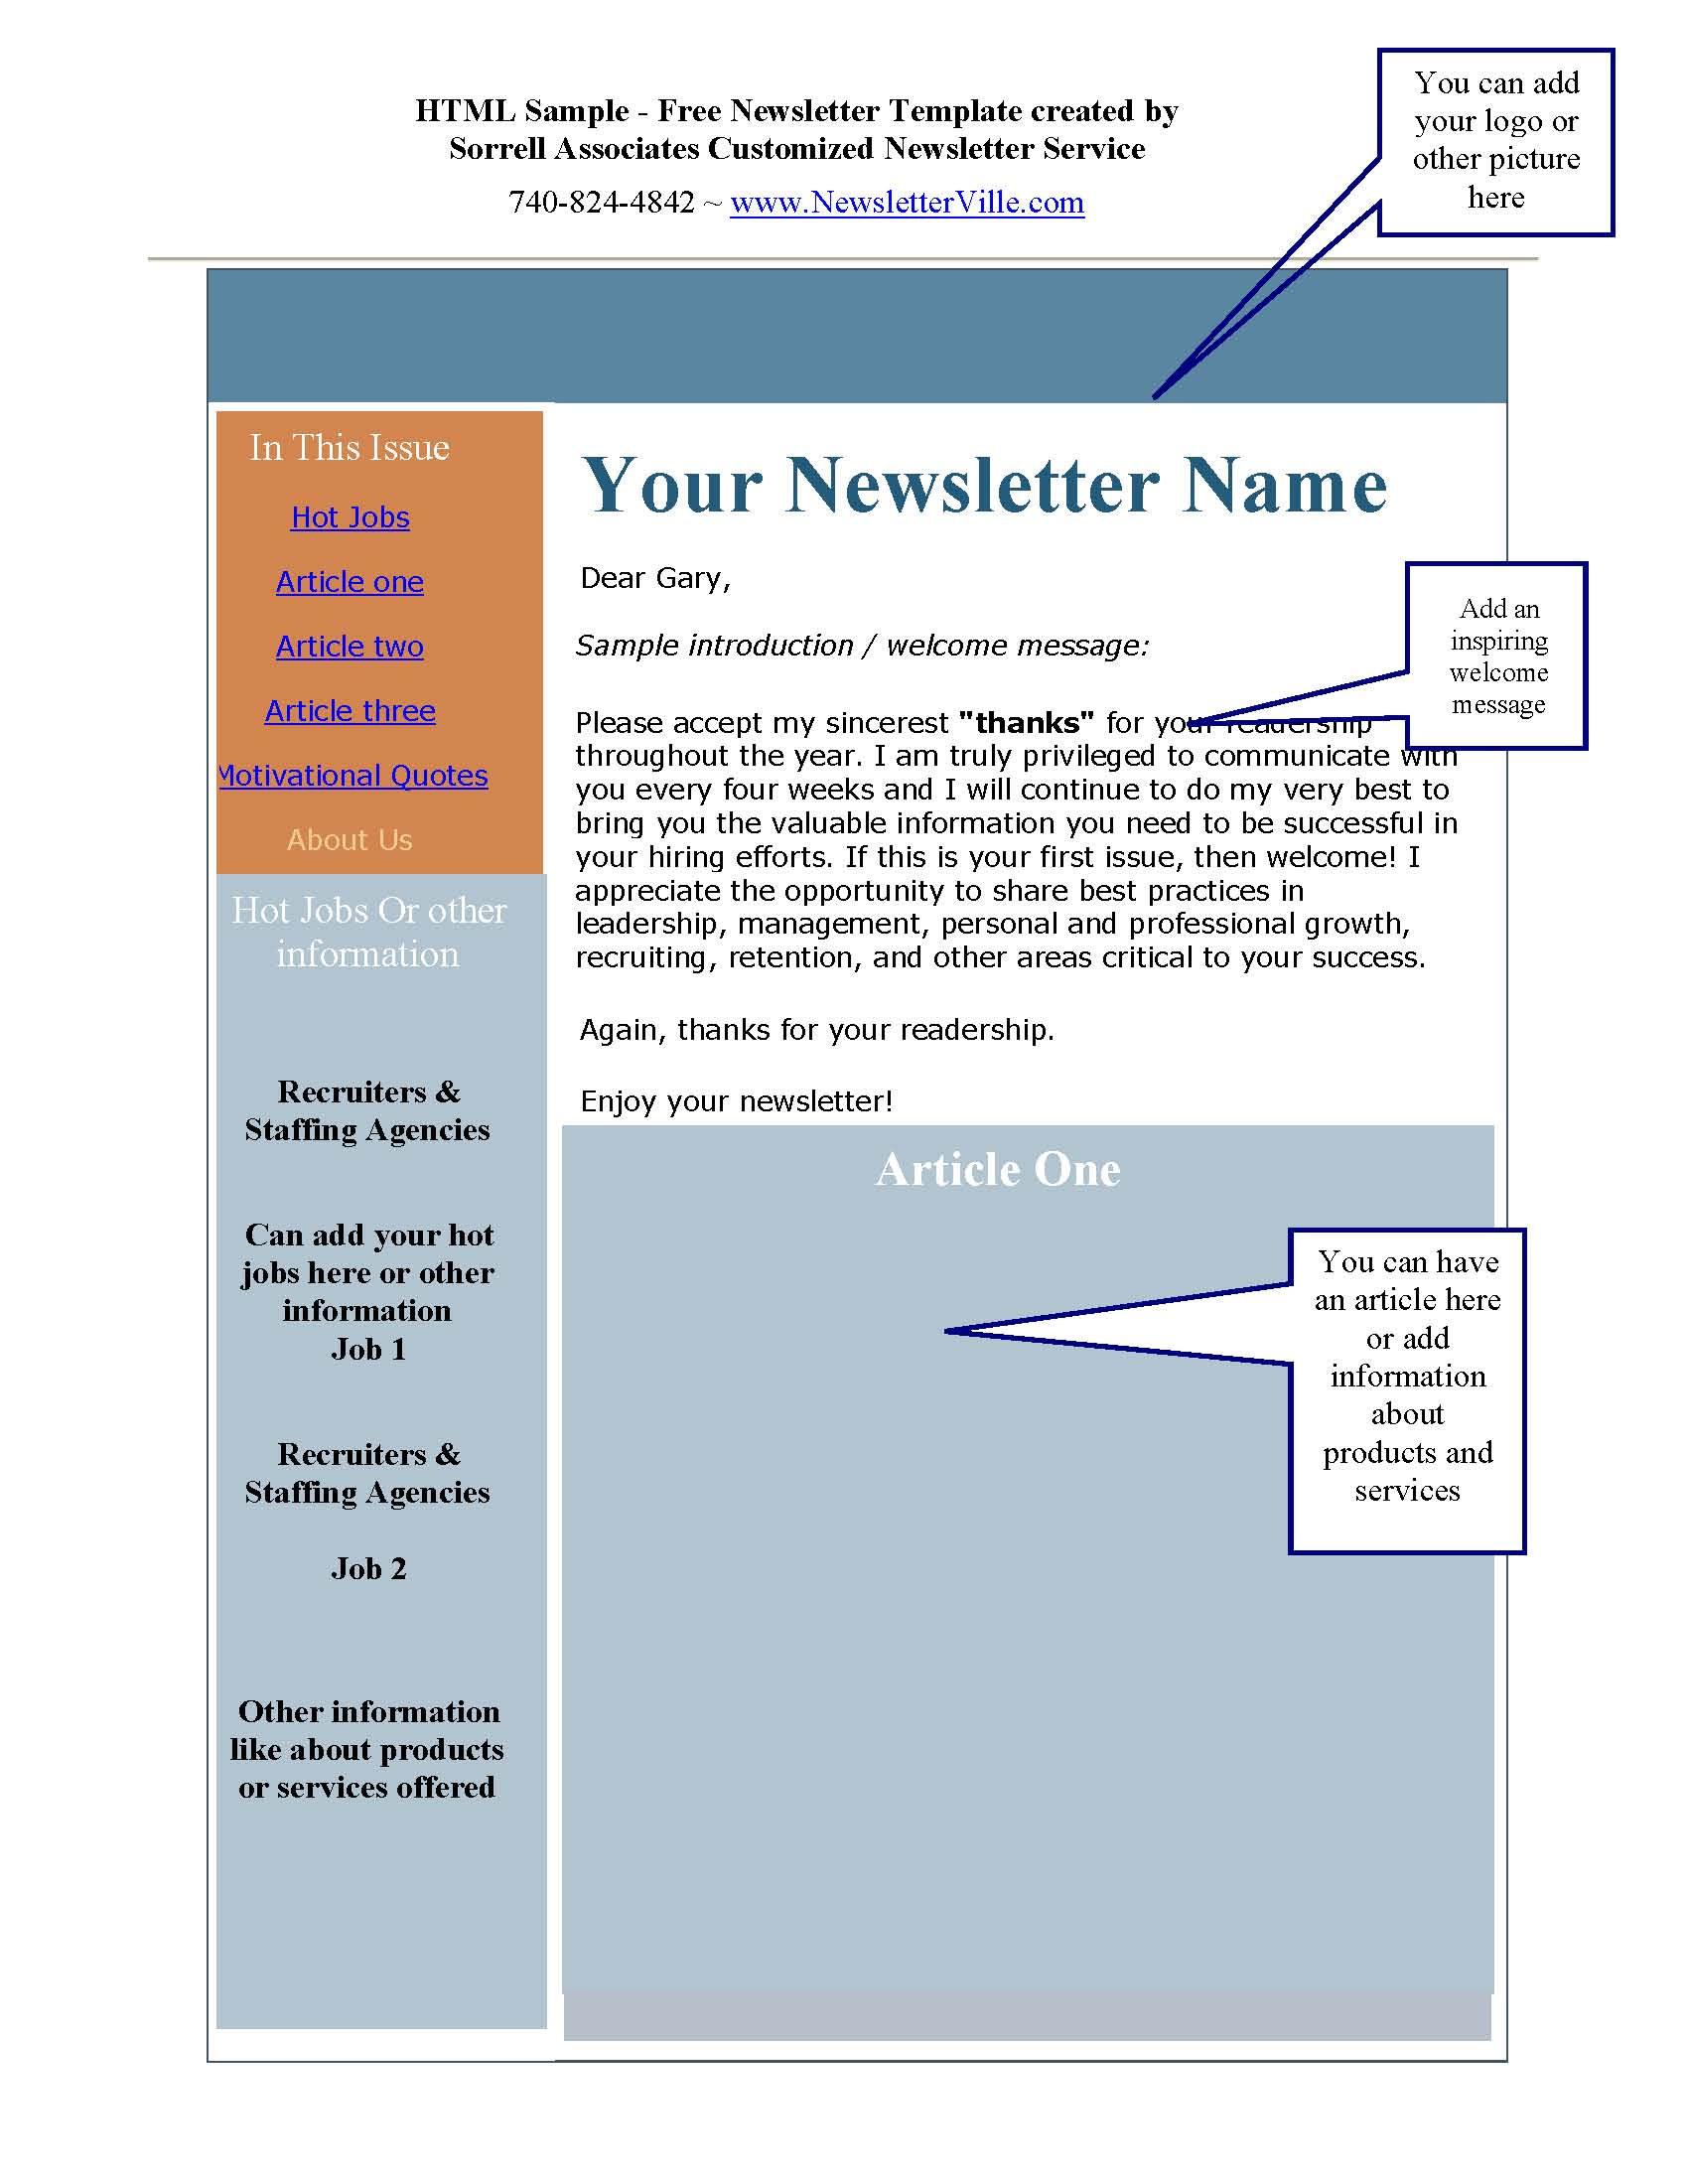 Newsletter blog articles provided plus free newsletter design spiritdancerdesigns Images